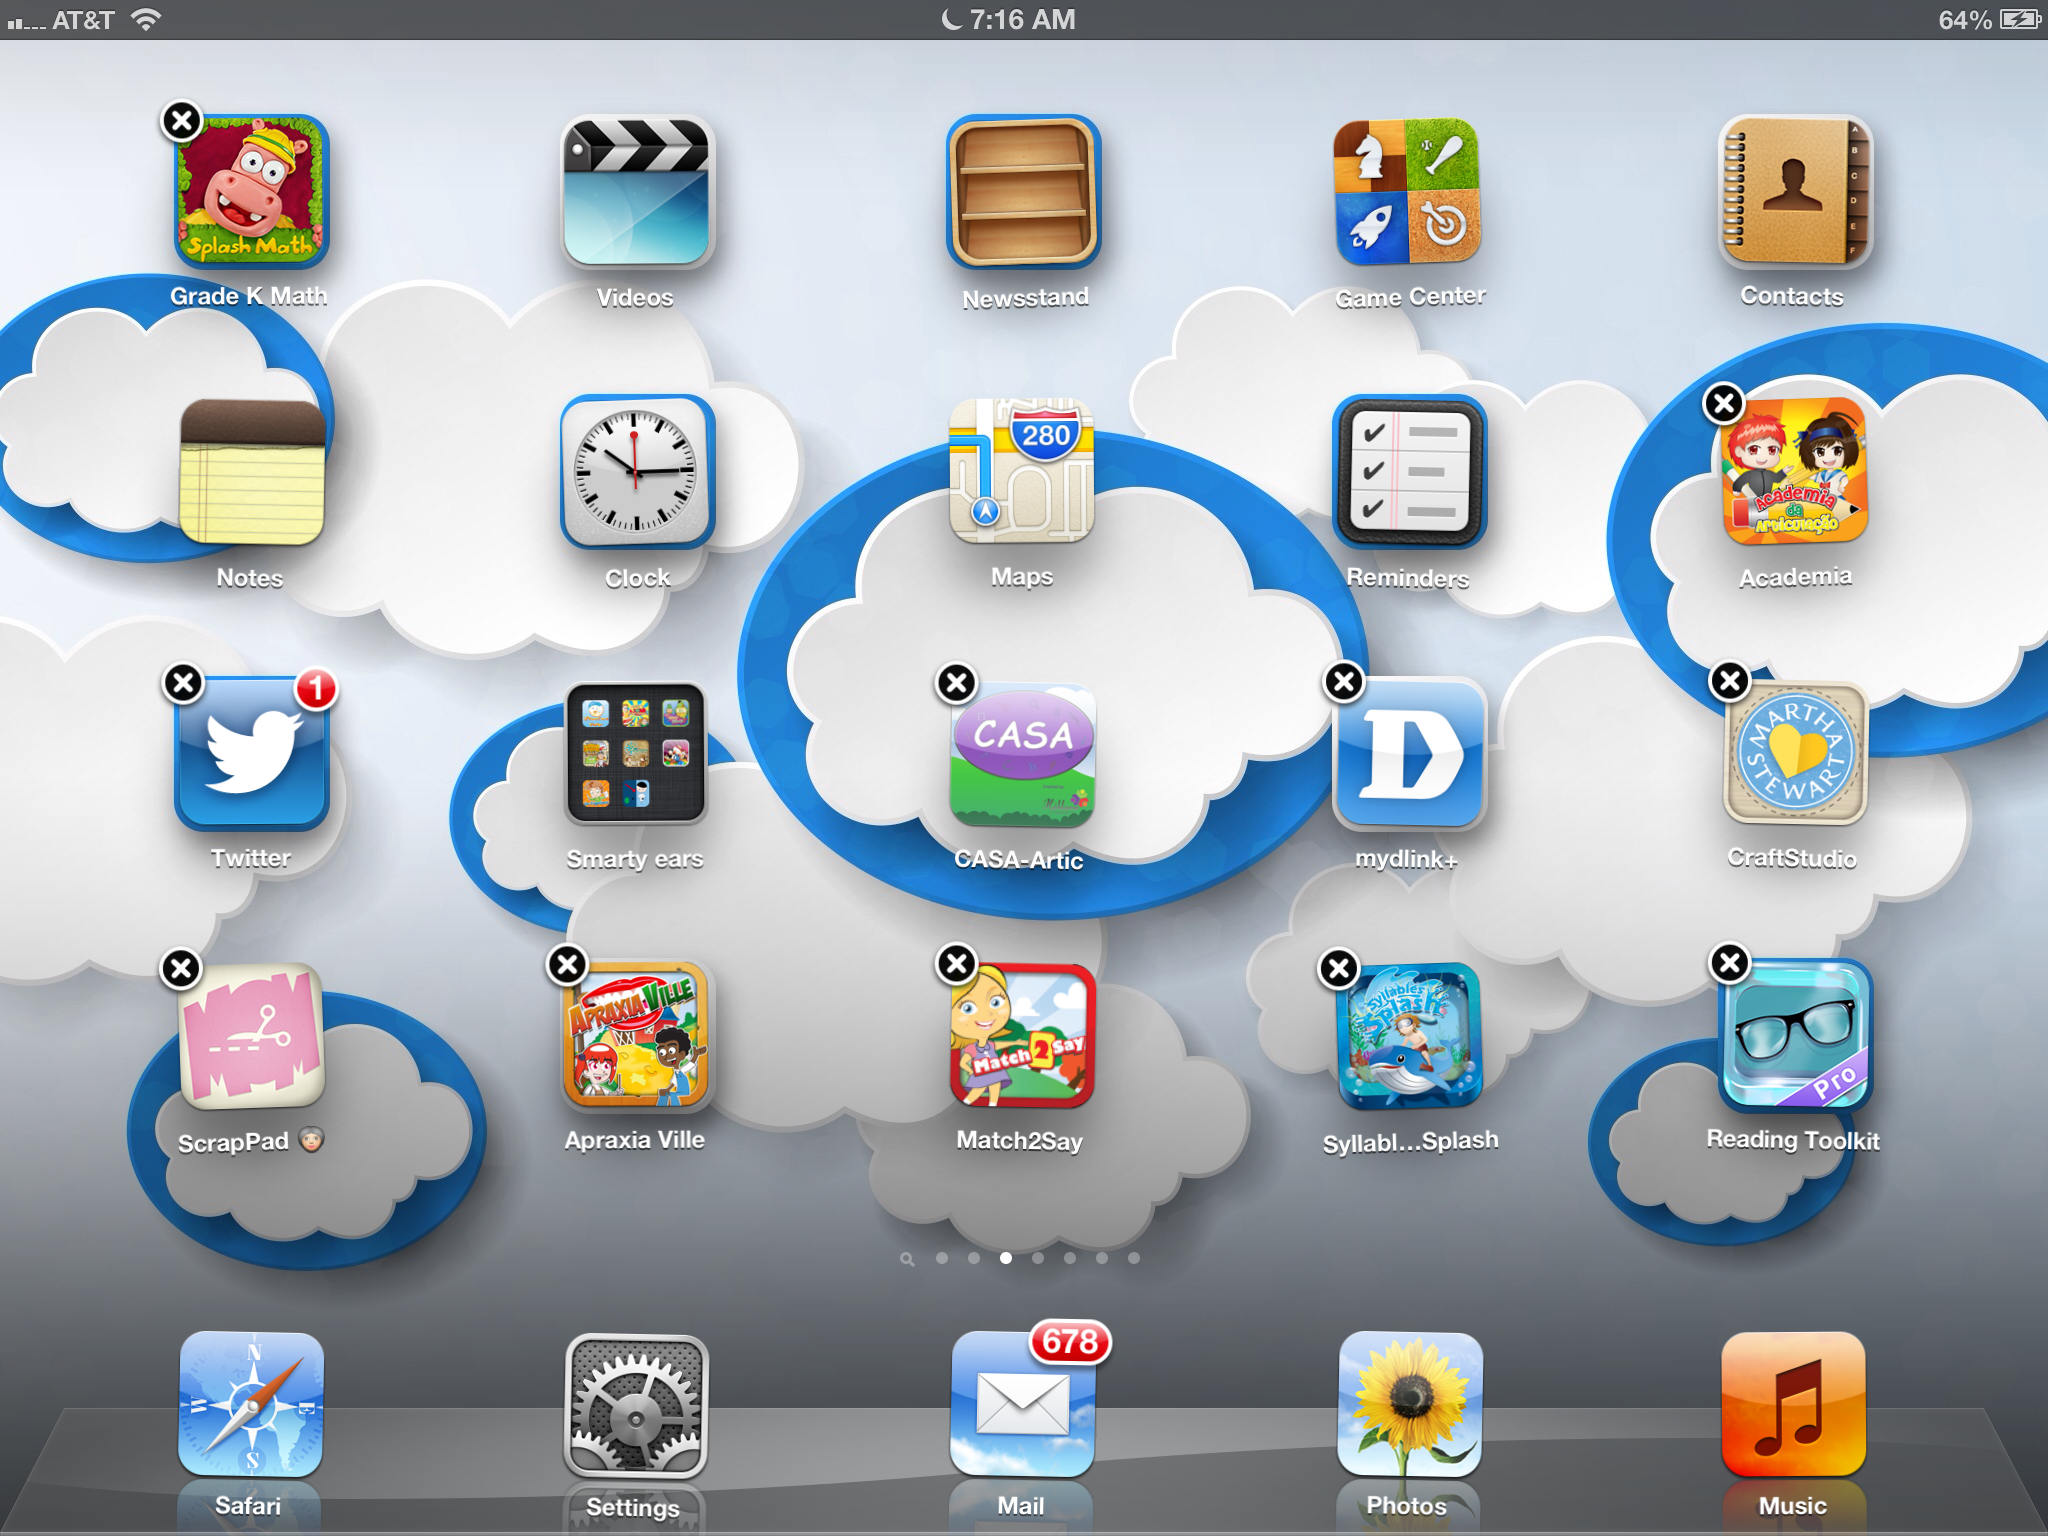 creating folder on iPad